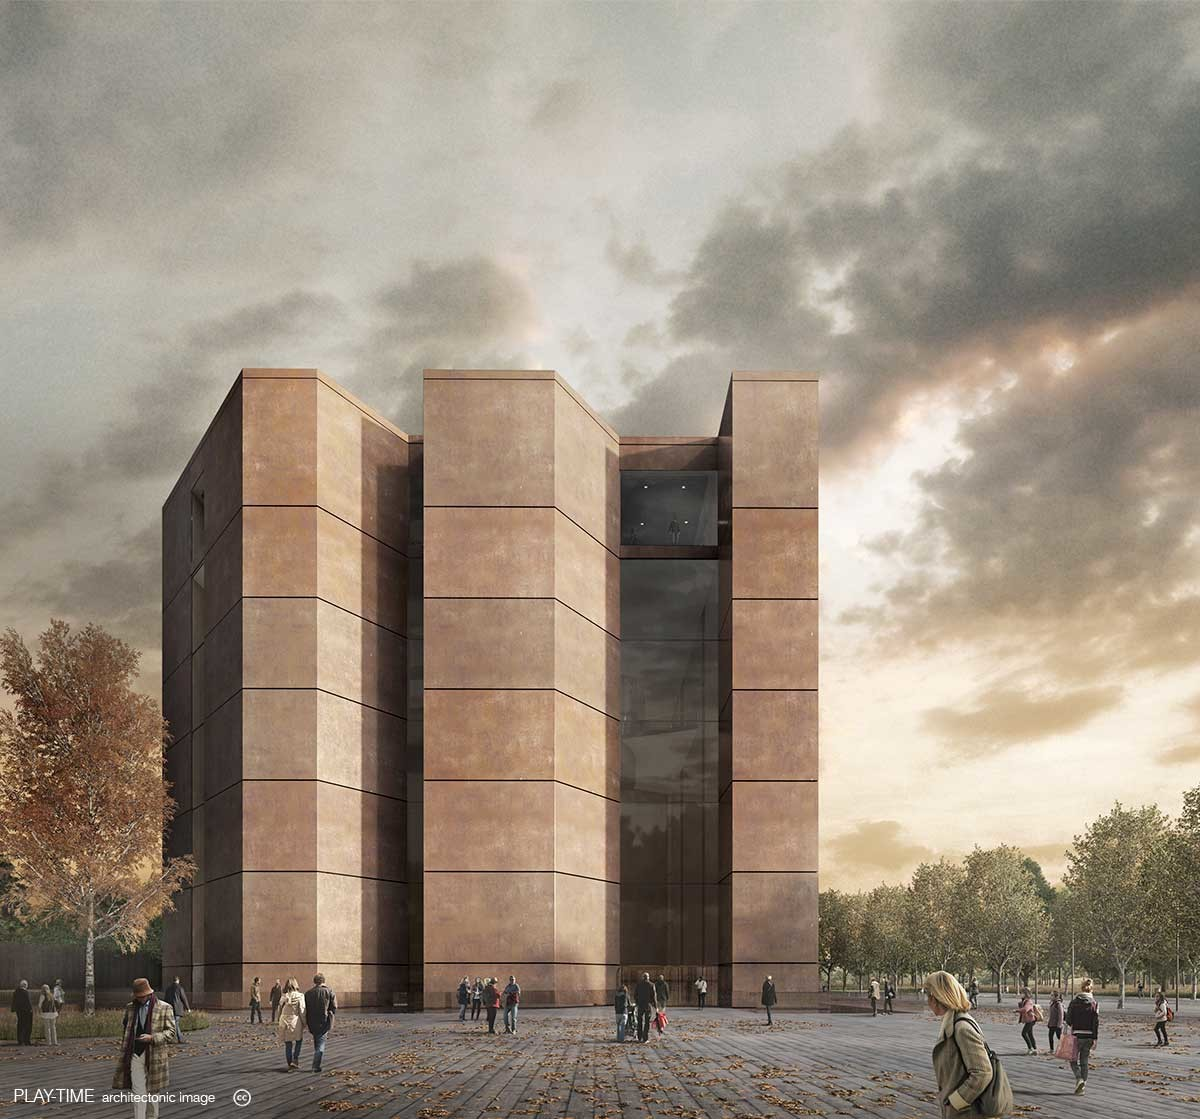 Play time architectonic image oab museum in kazakhstan